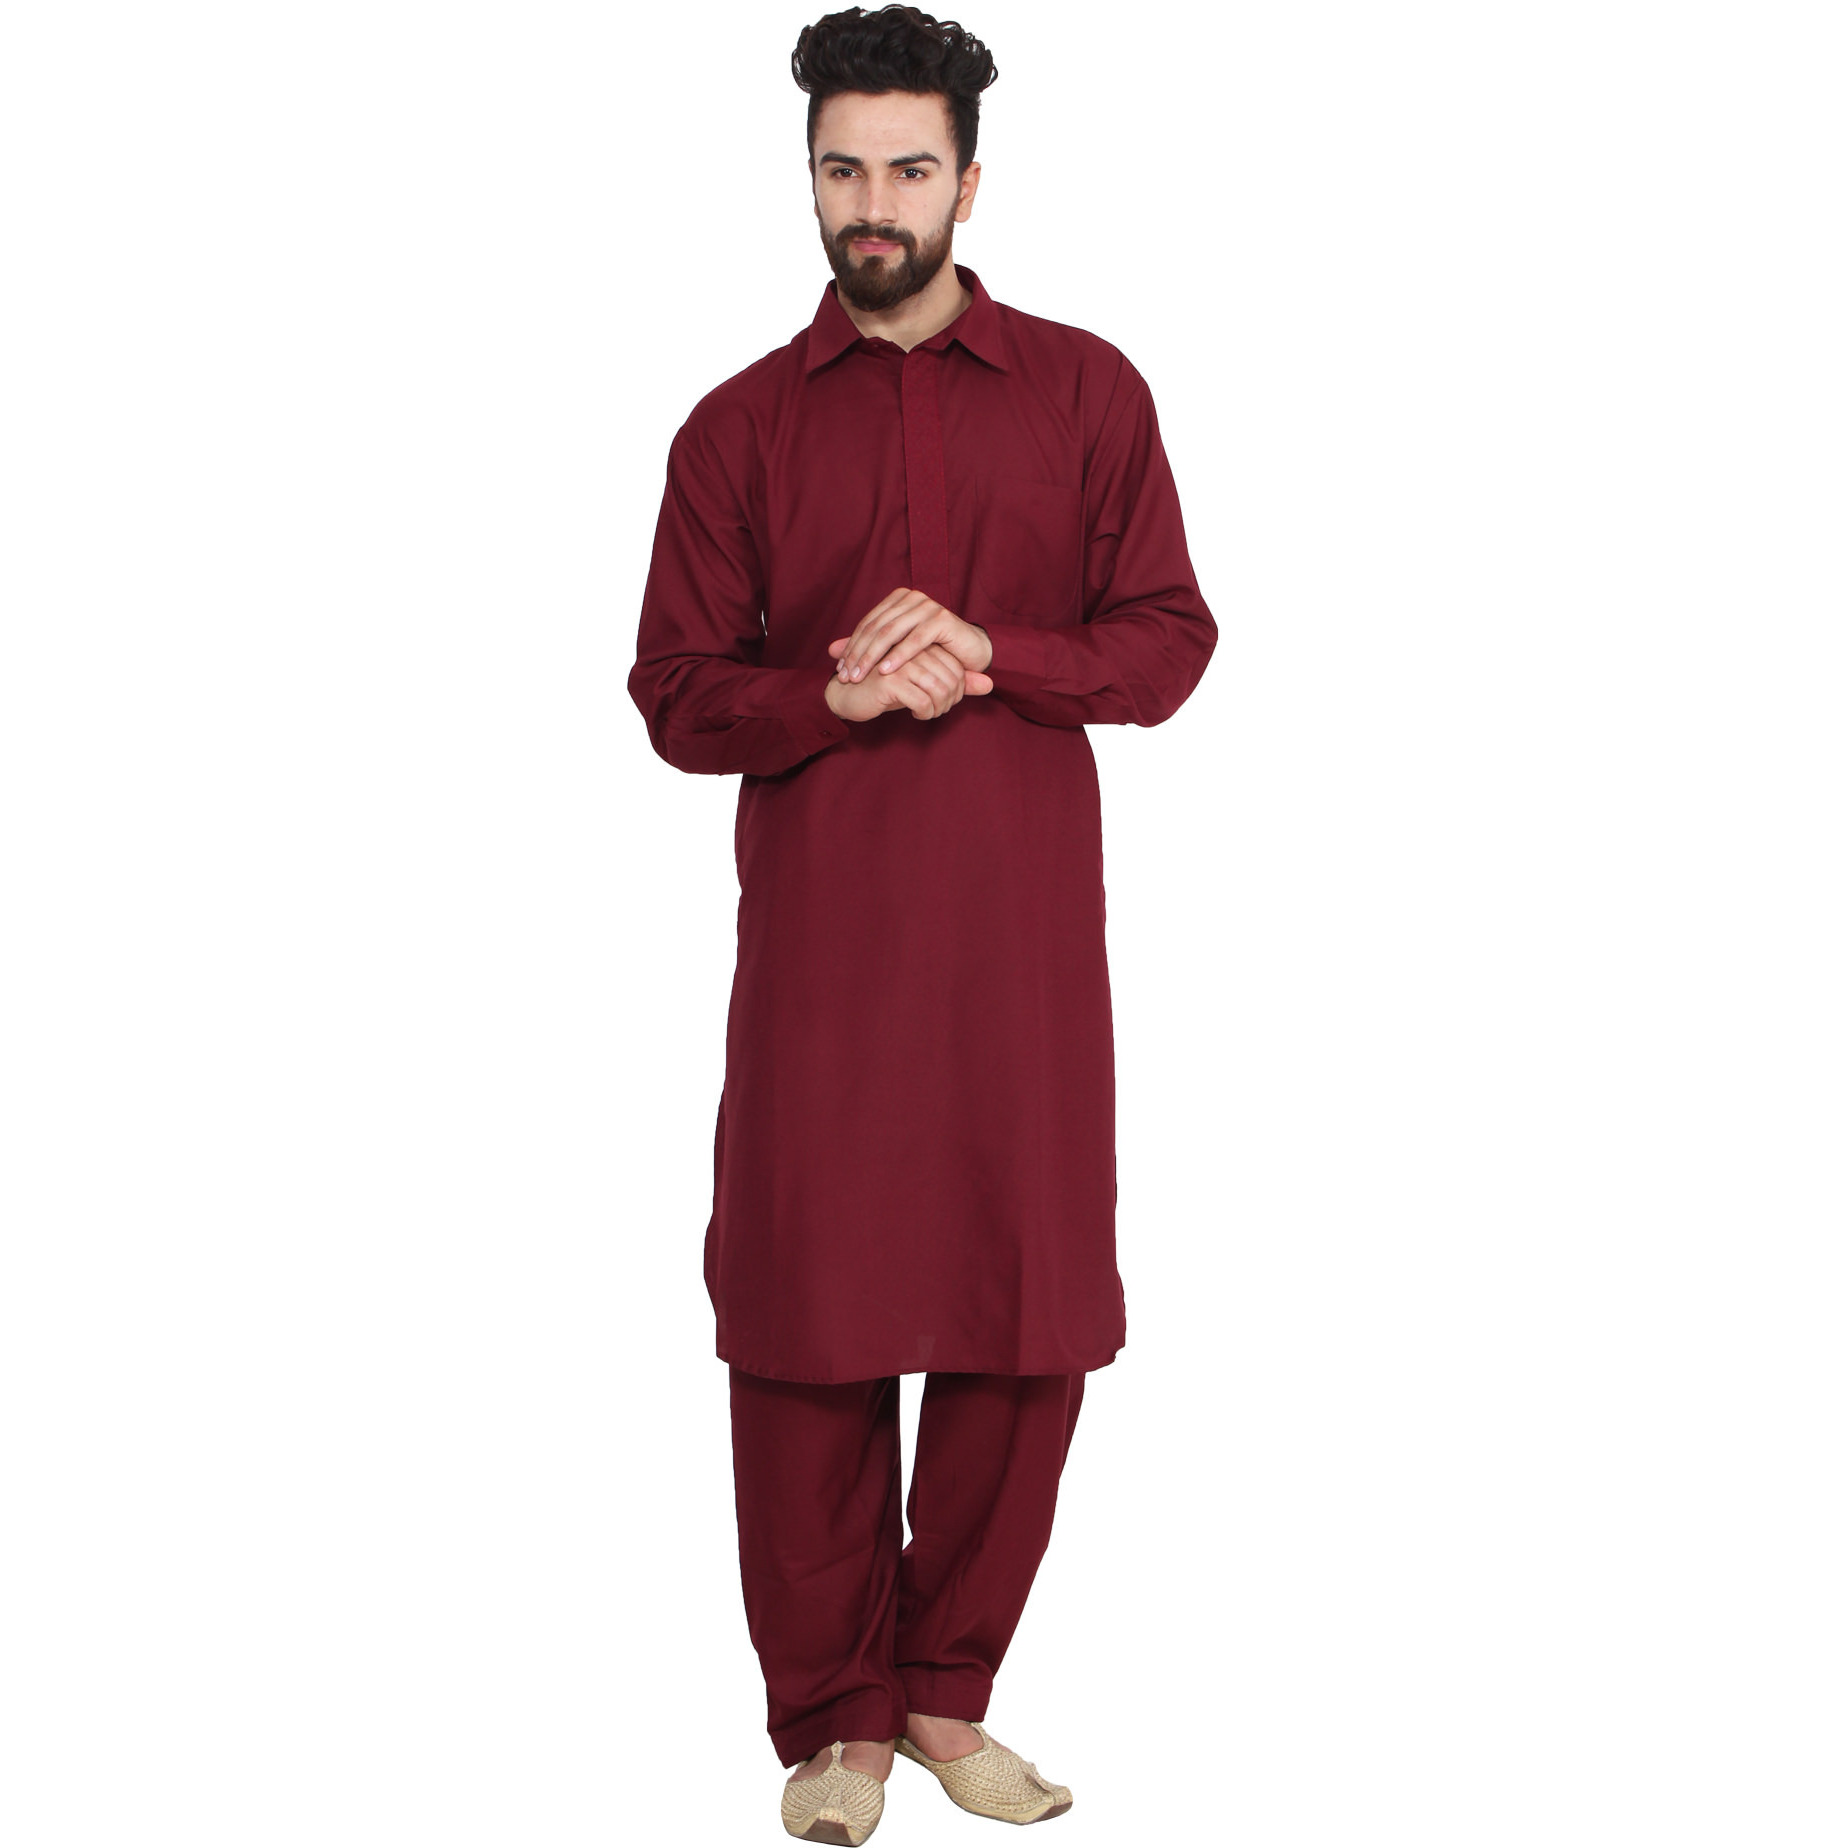 Mens Silk Maroon Emroidery Designer Kurta Churidaar Set Long Sleeve Ban collar Regular Fit